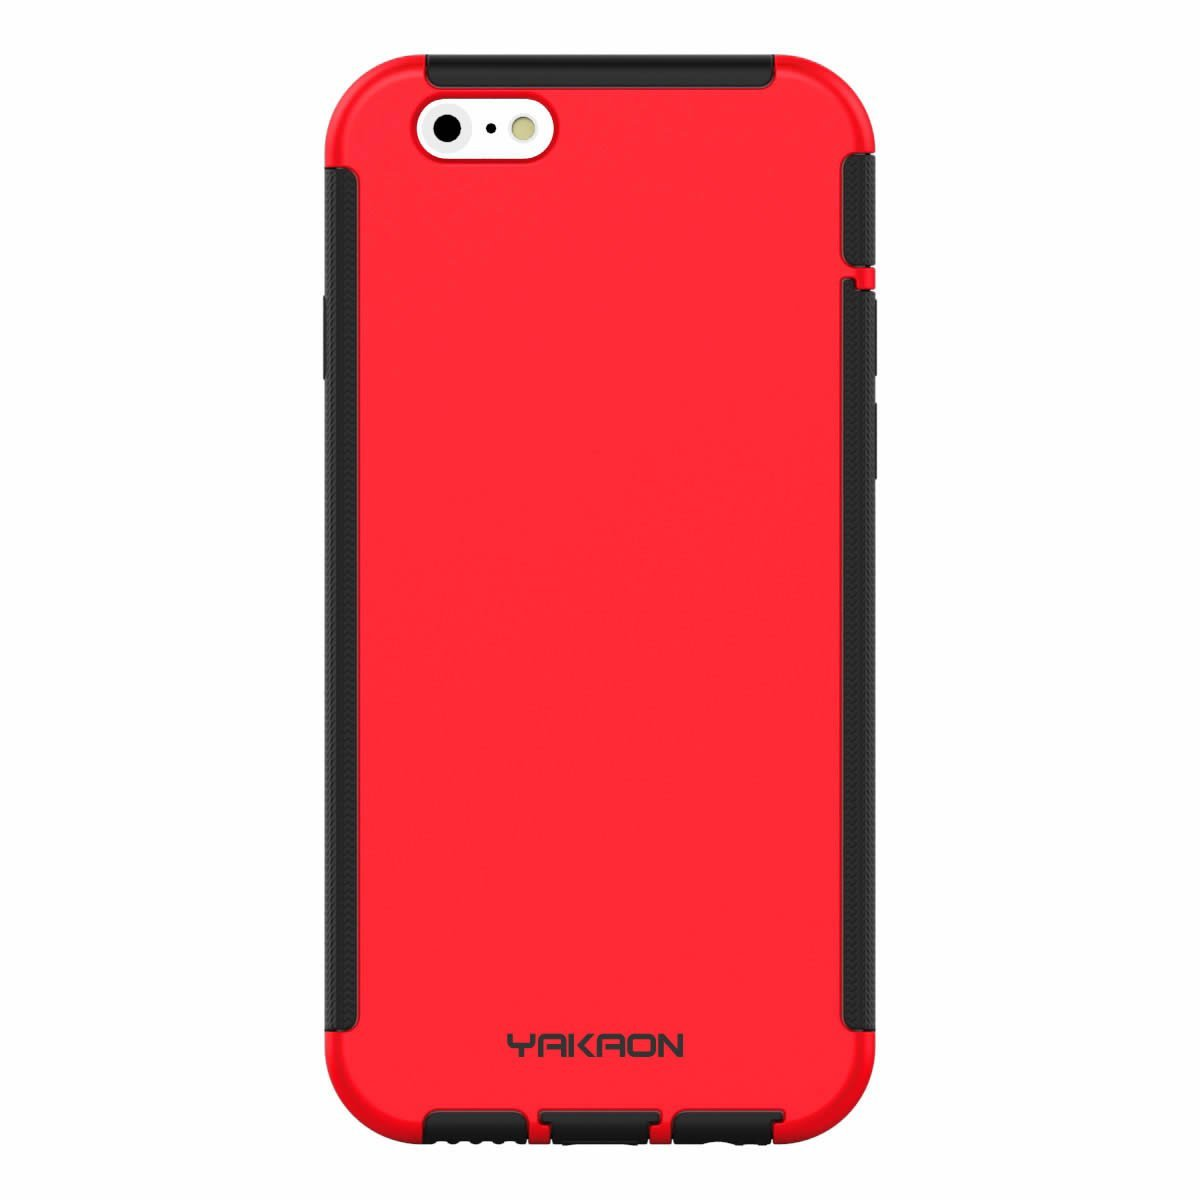 Durable Shatterproof, Dustproof, Shockproof Protective Case for iPhone 5S red